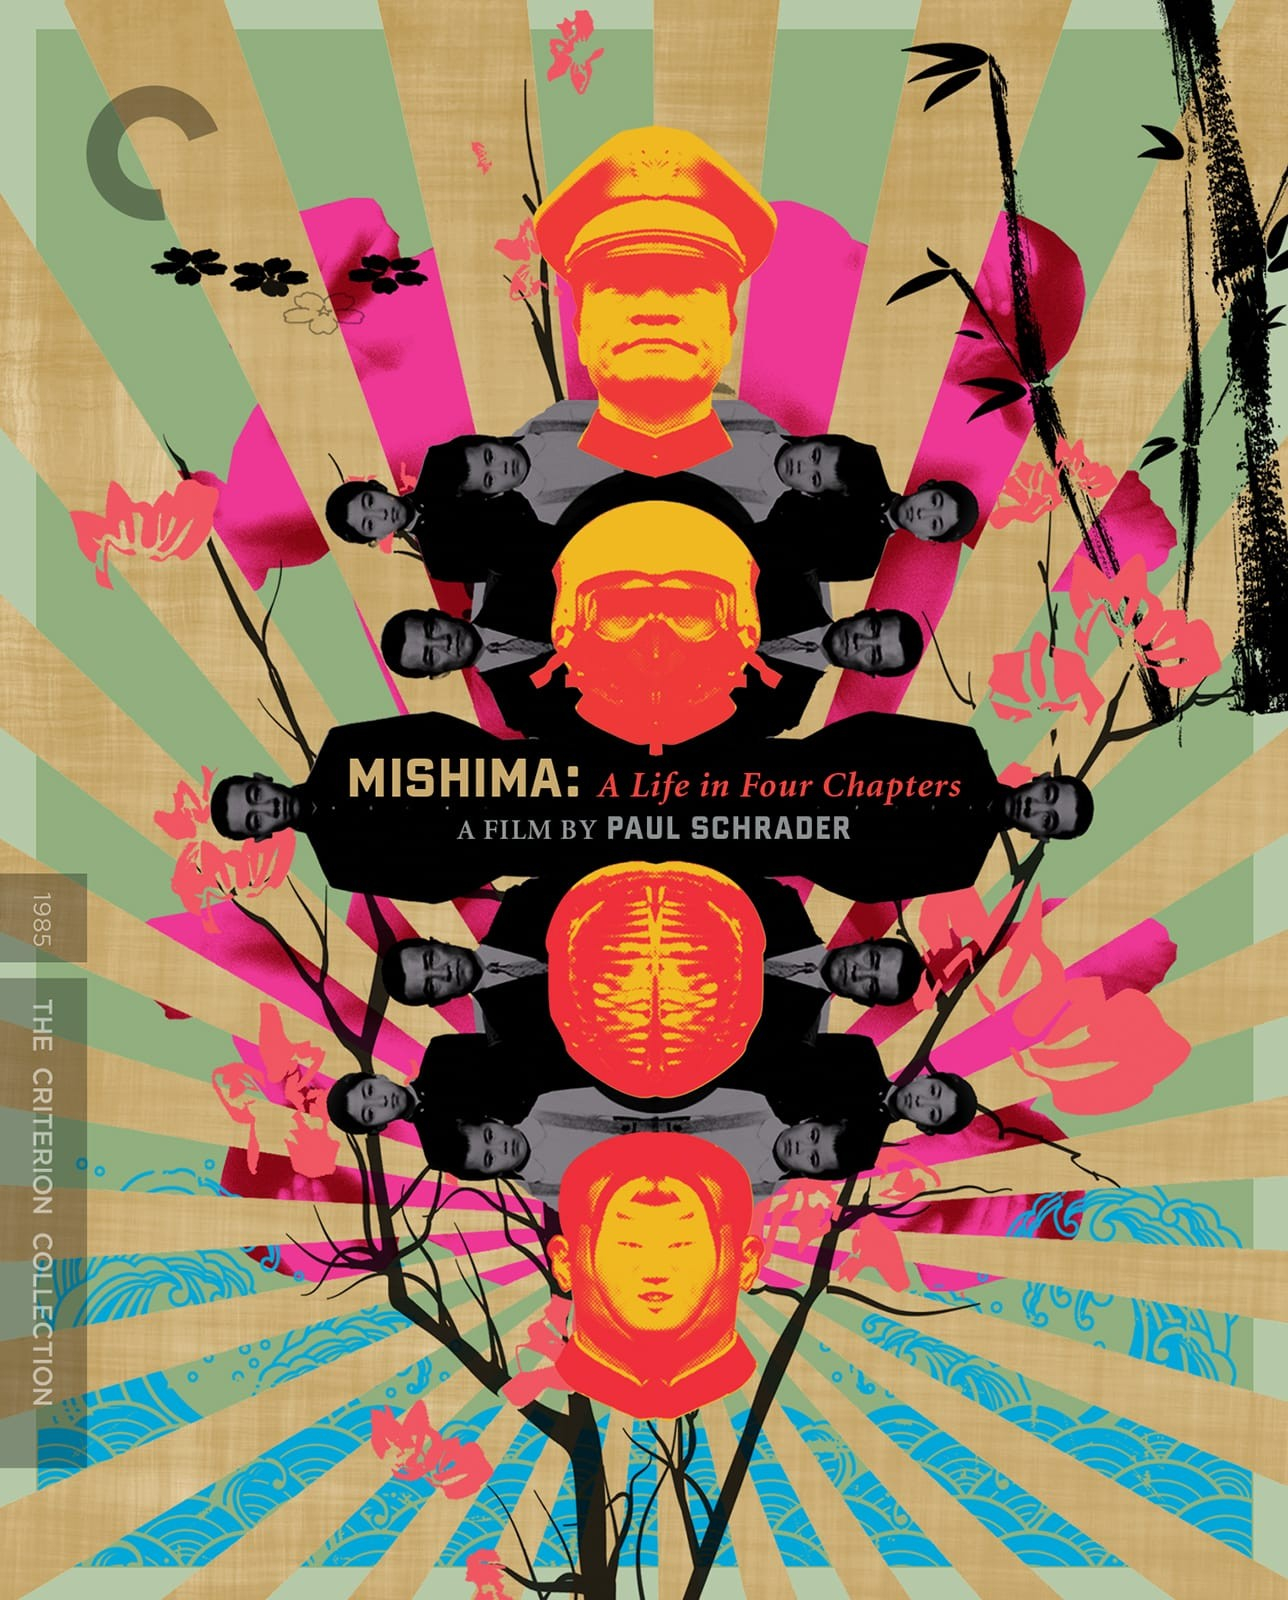 Buy Mishima: A Life in Four Chapters (Blu-ray)